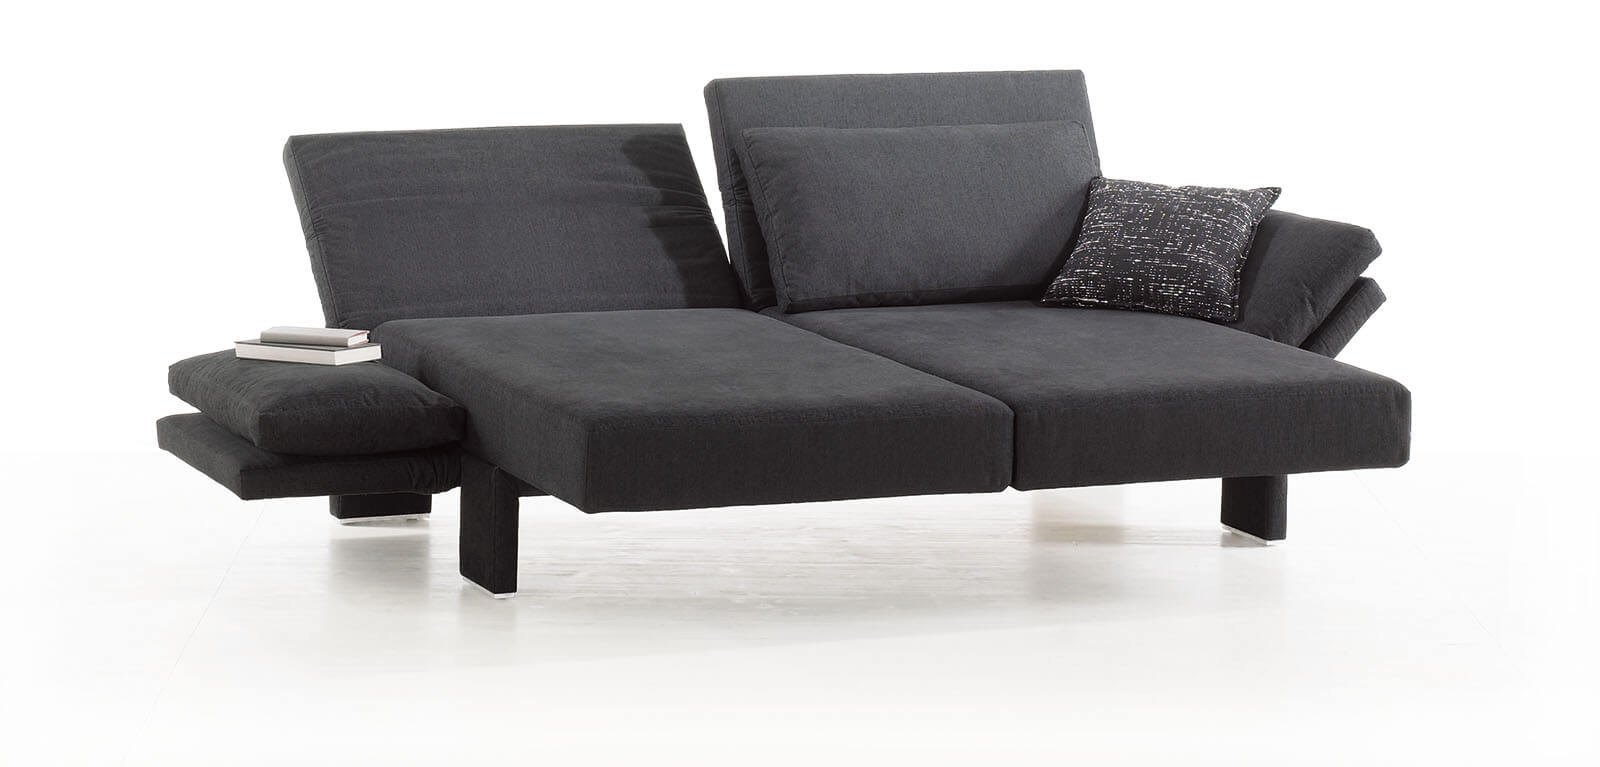 schlafsofa scene von franz fertig. Black Bedroom Furniture Sets. Home Design Ideas